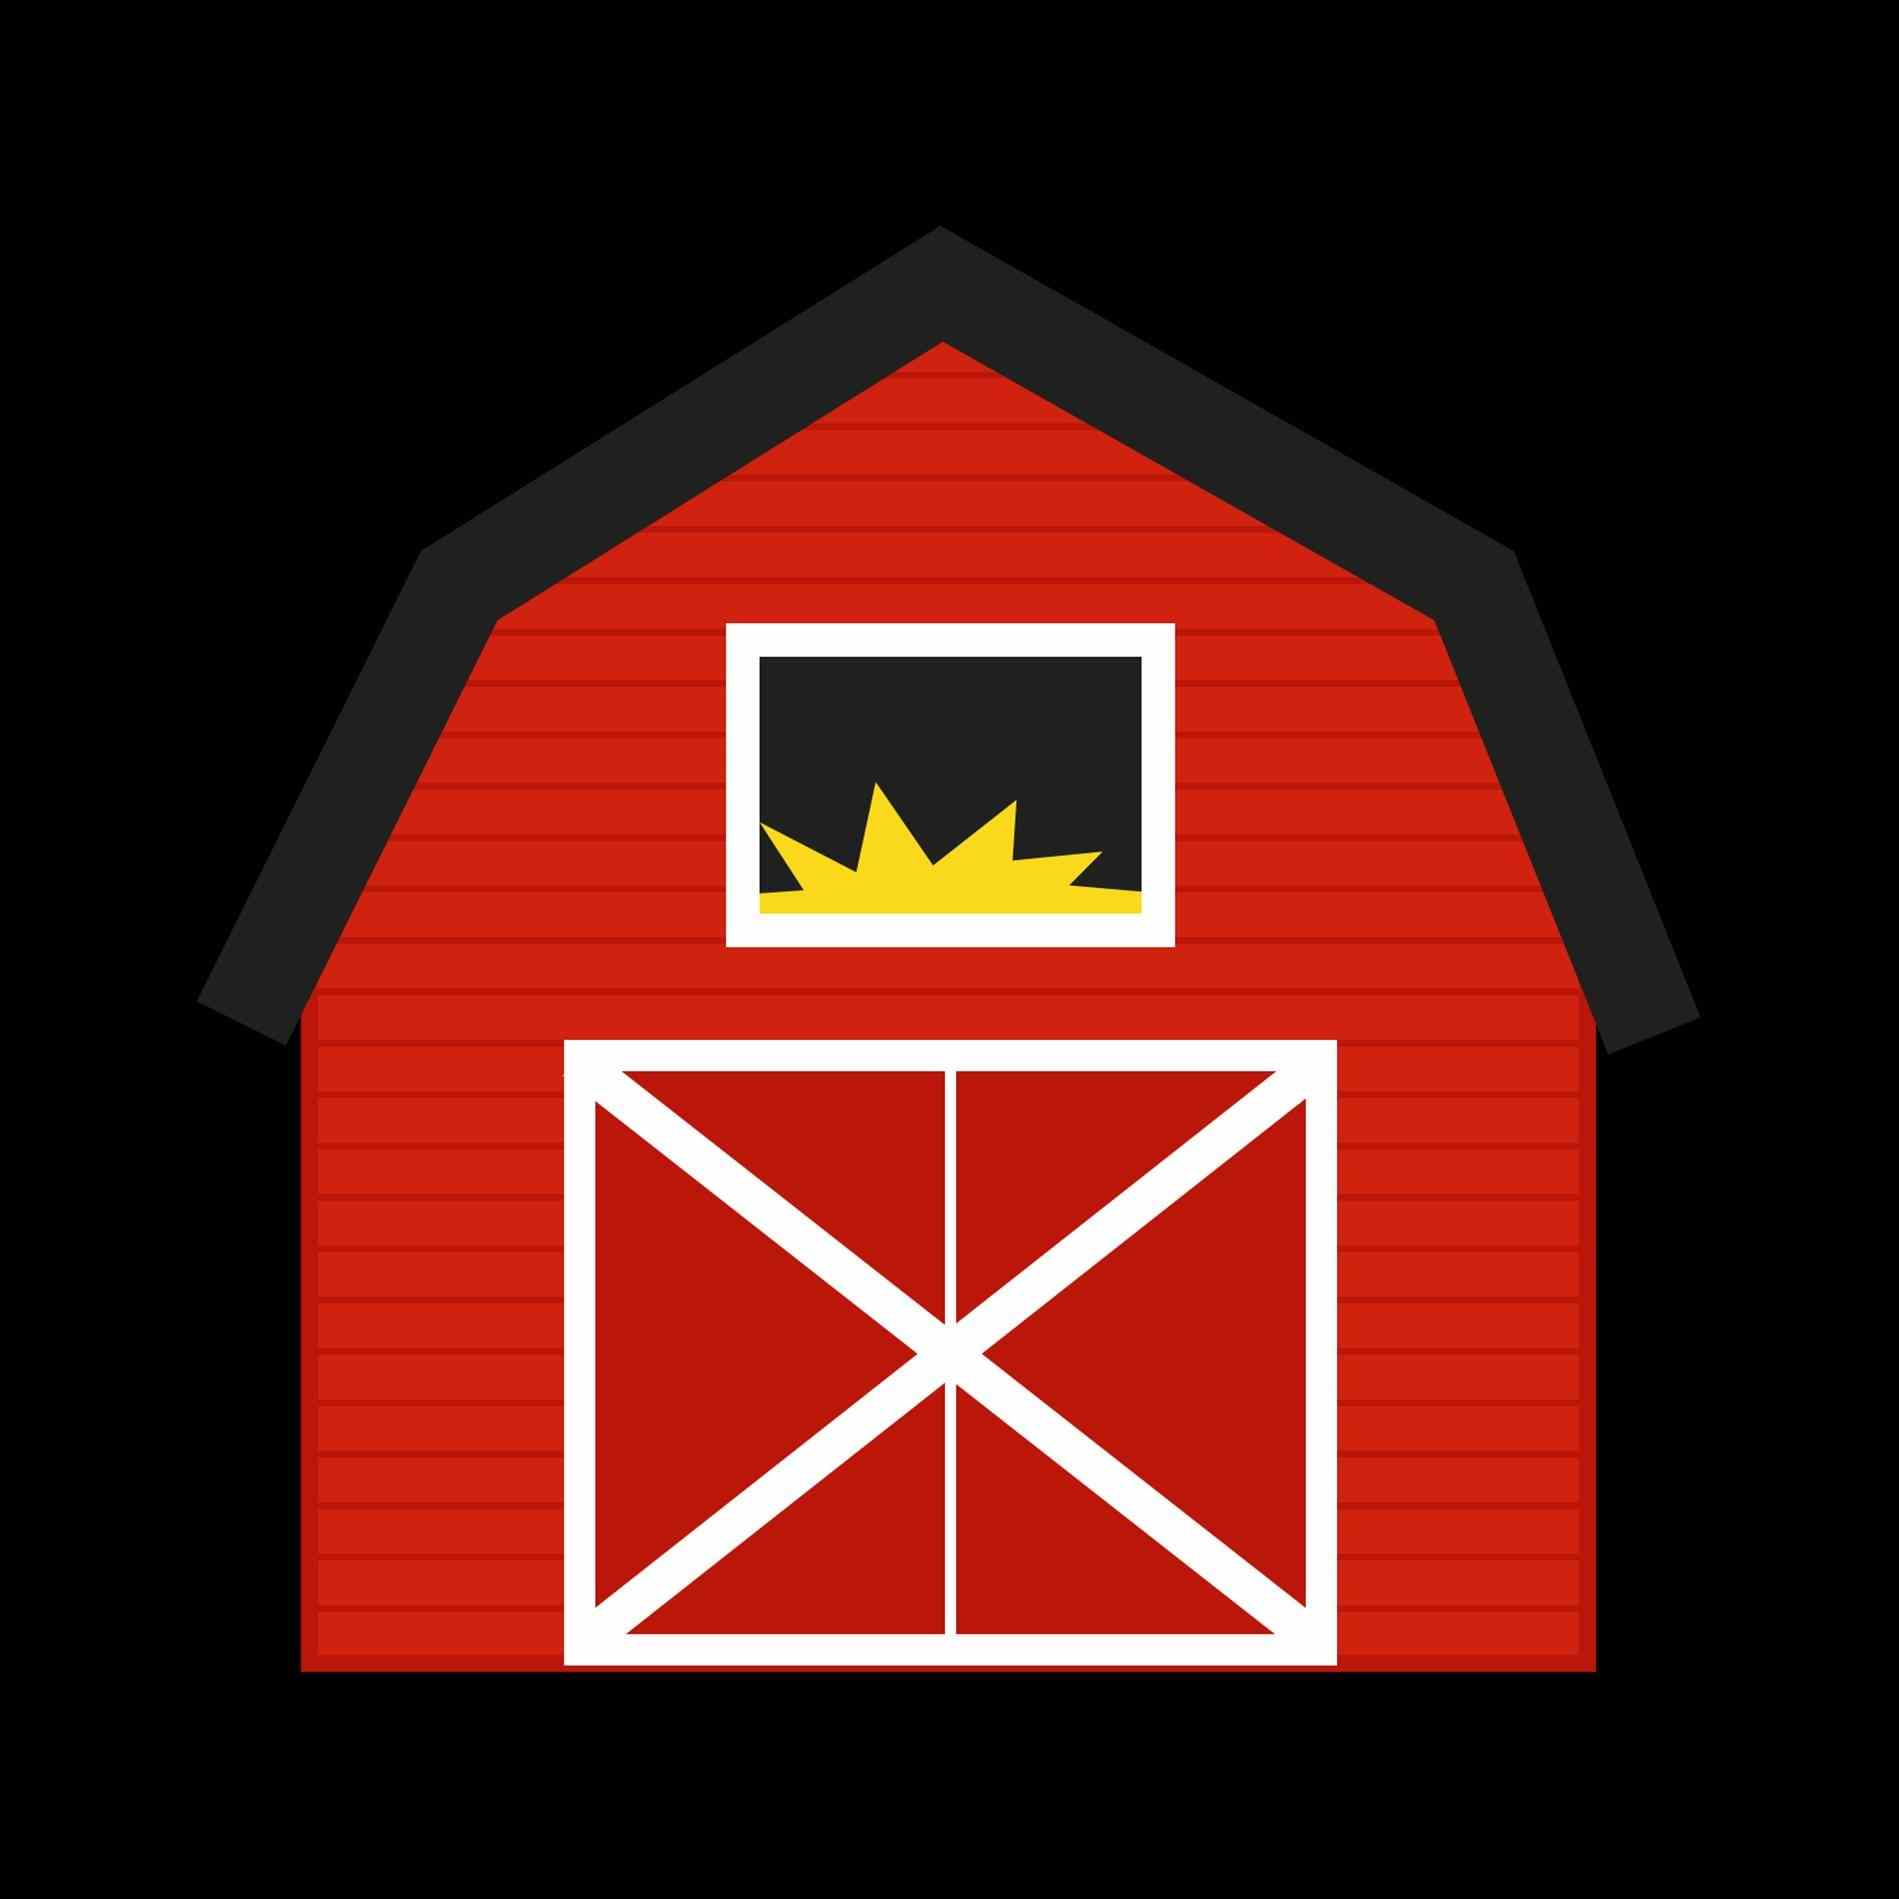 Farmhouse clipart. Cute farm with barn